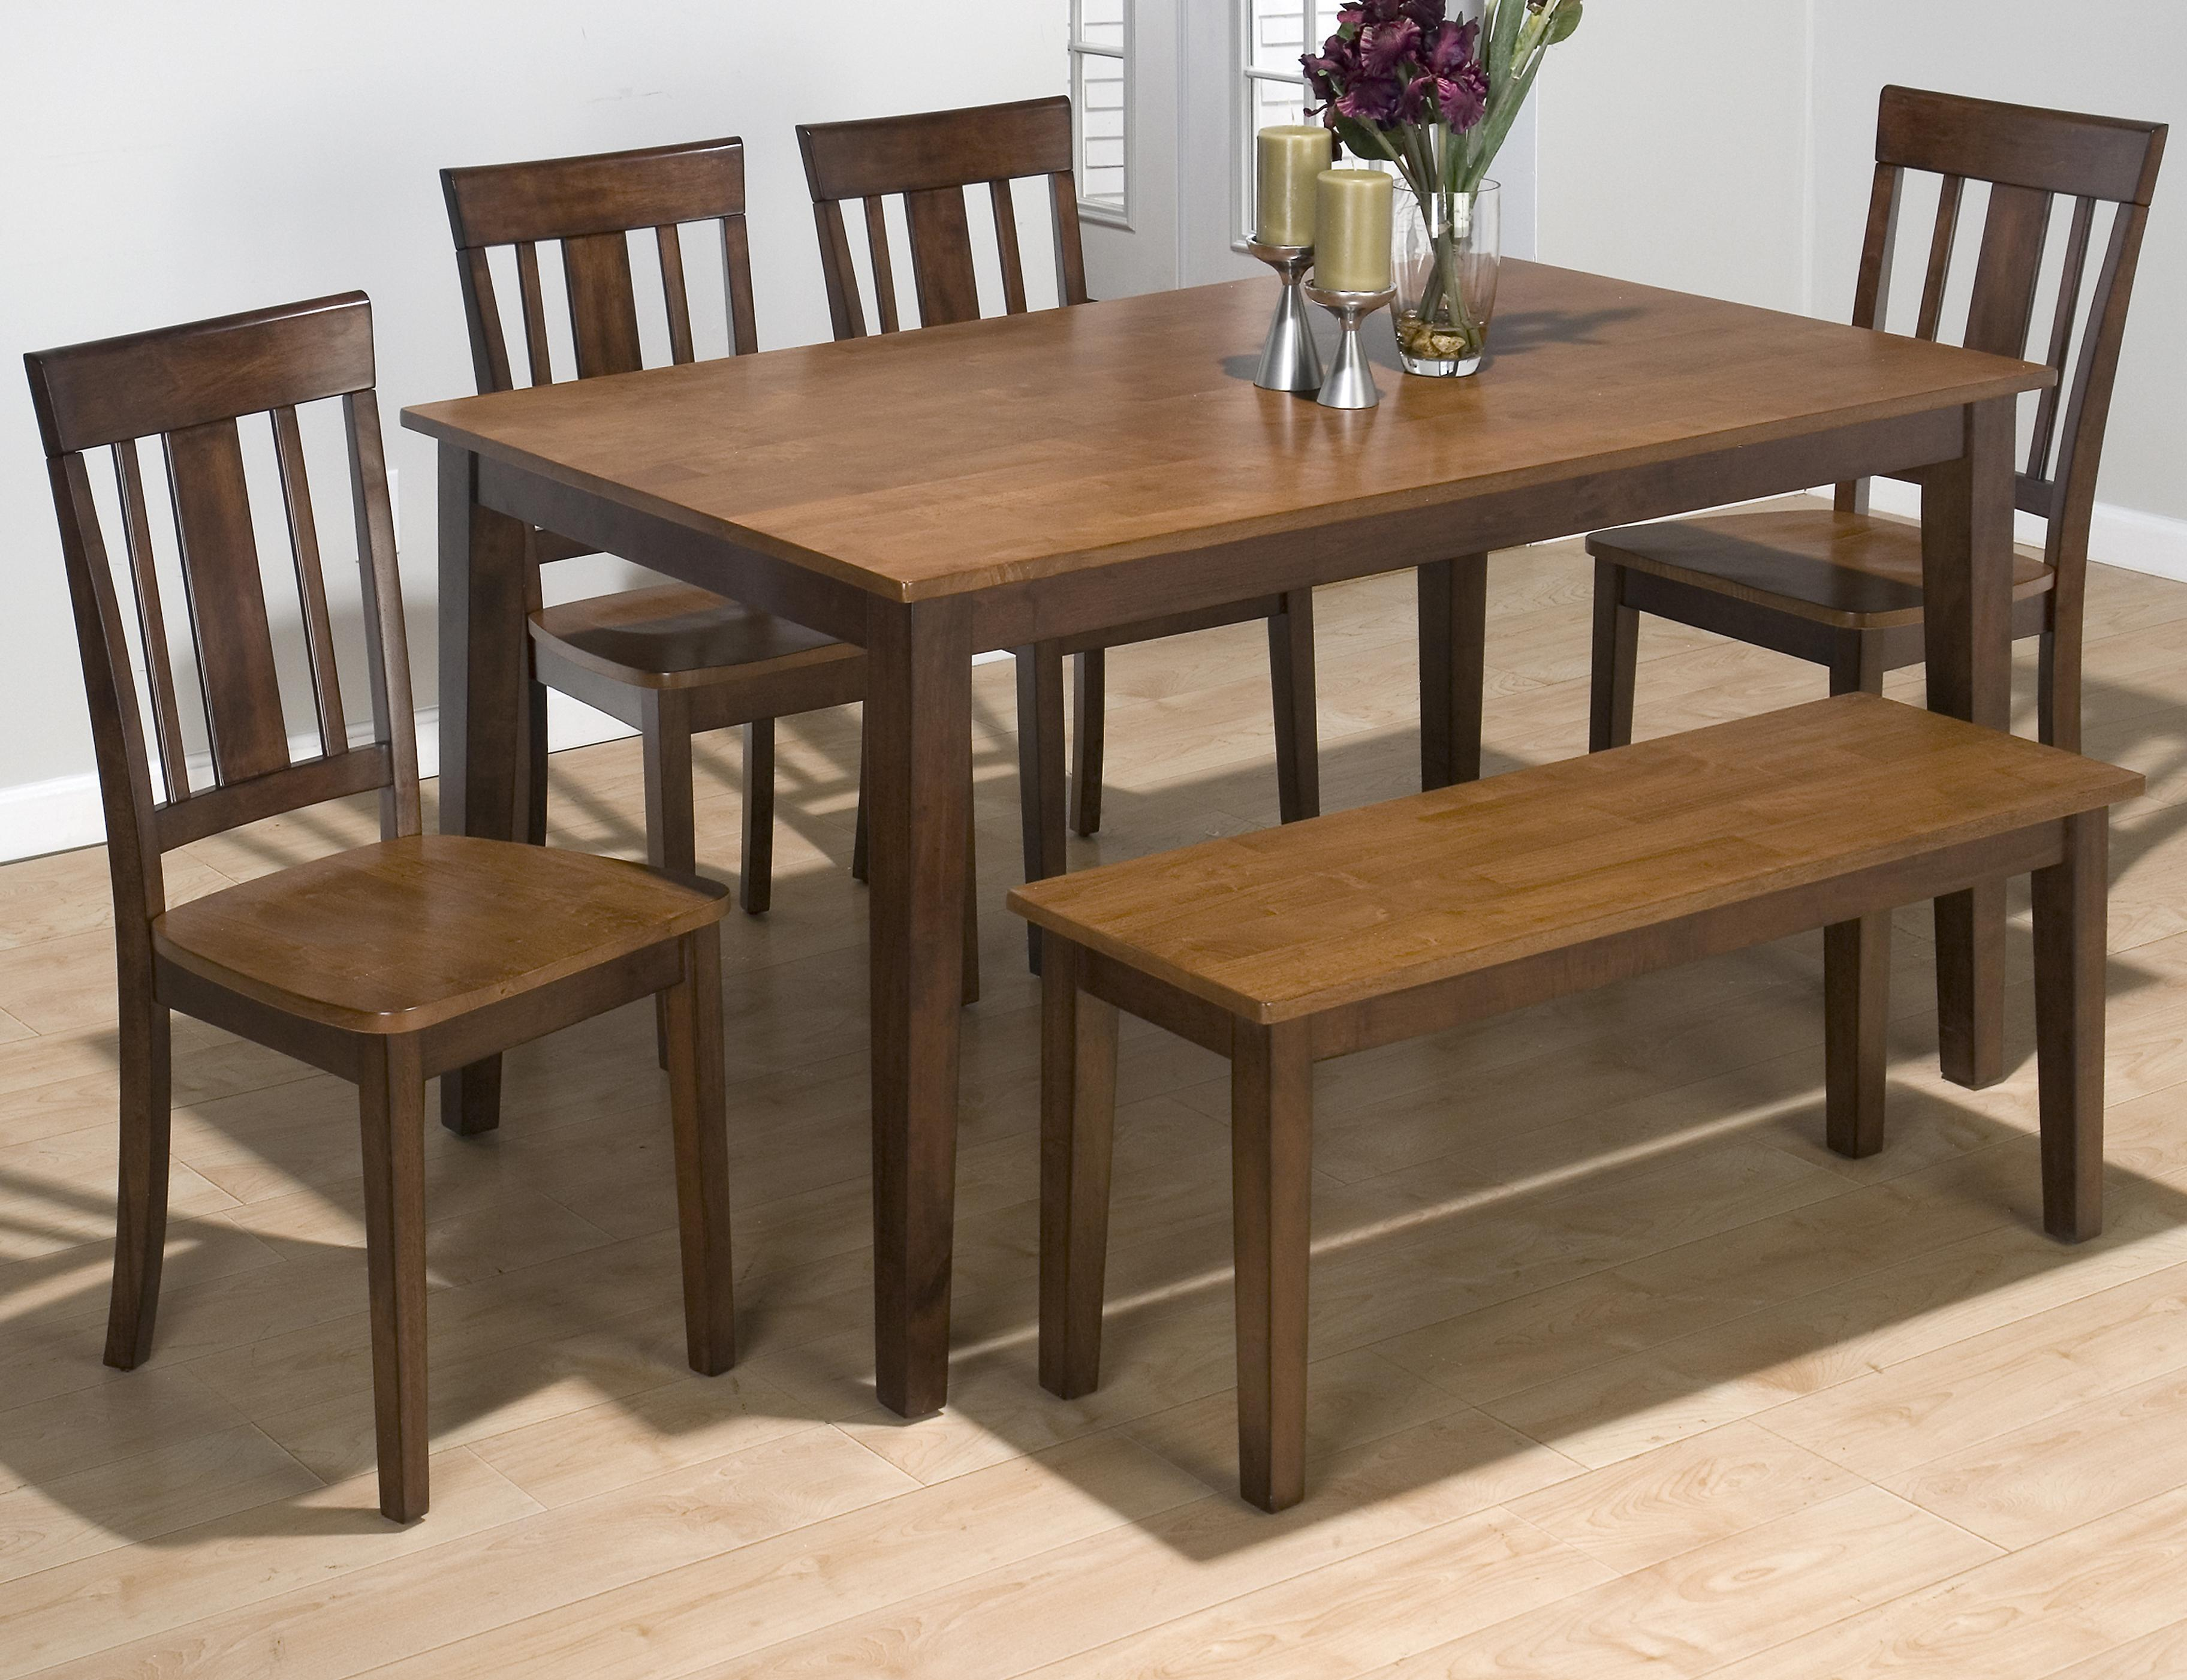 Solid rubberwood rectangle table set with 4 triple upright chairs